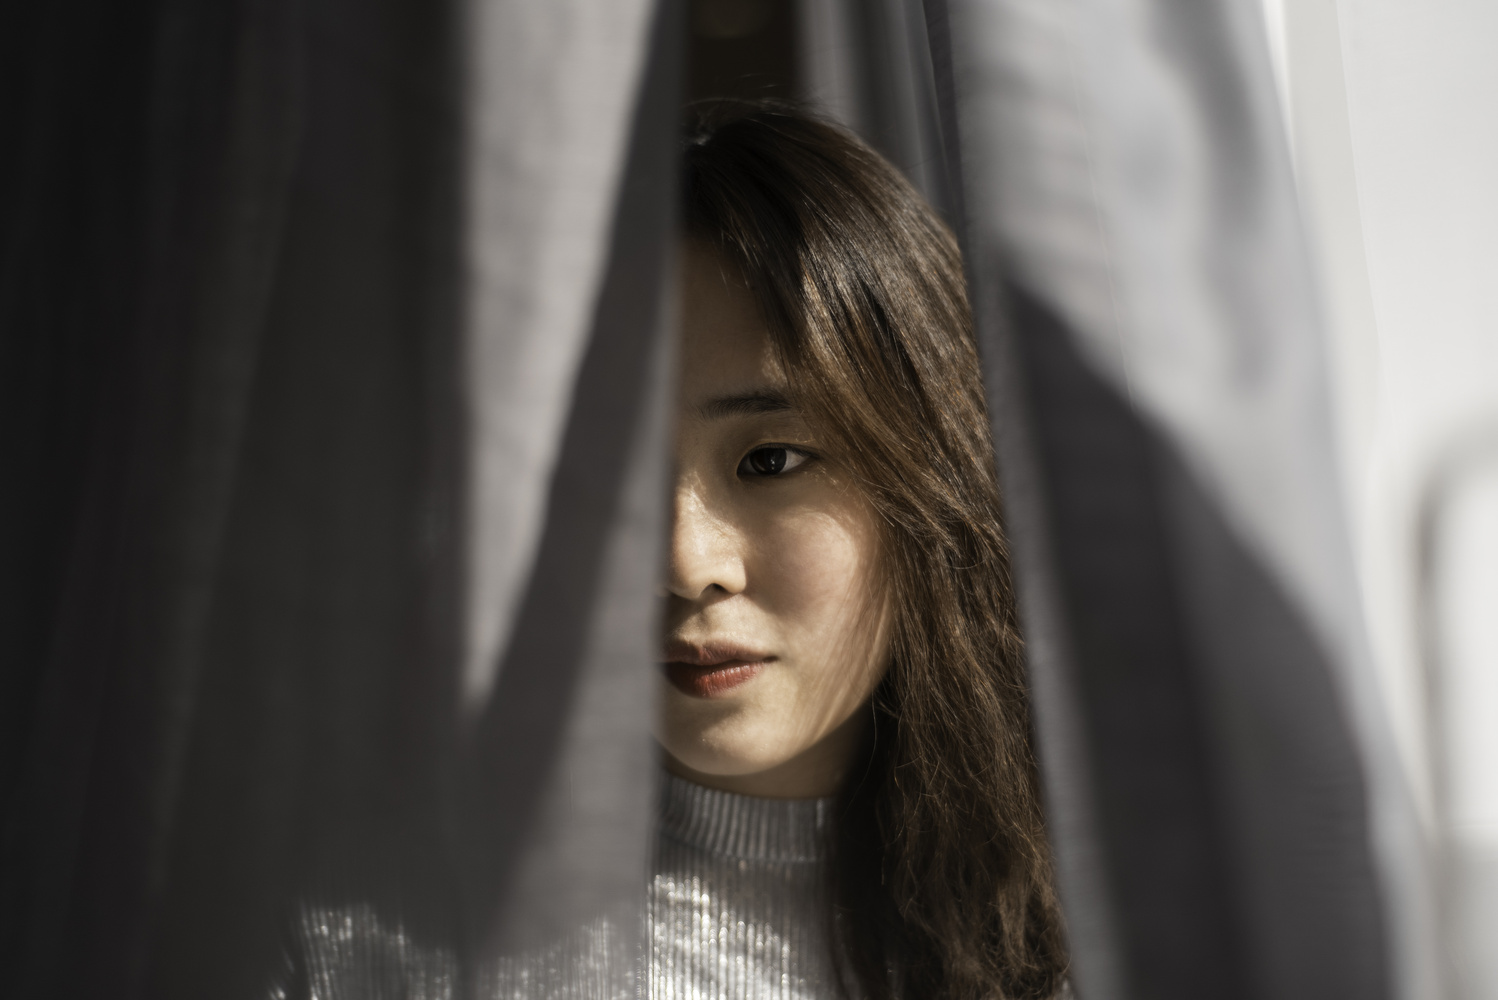 Behind the curtains by Willy Lau